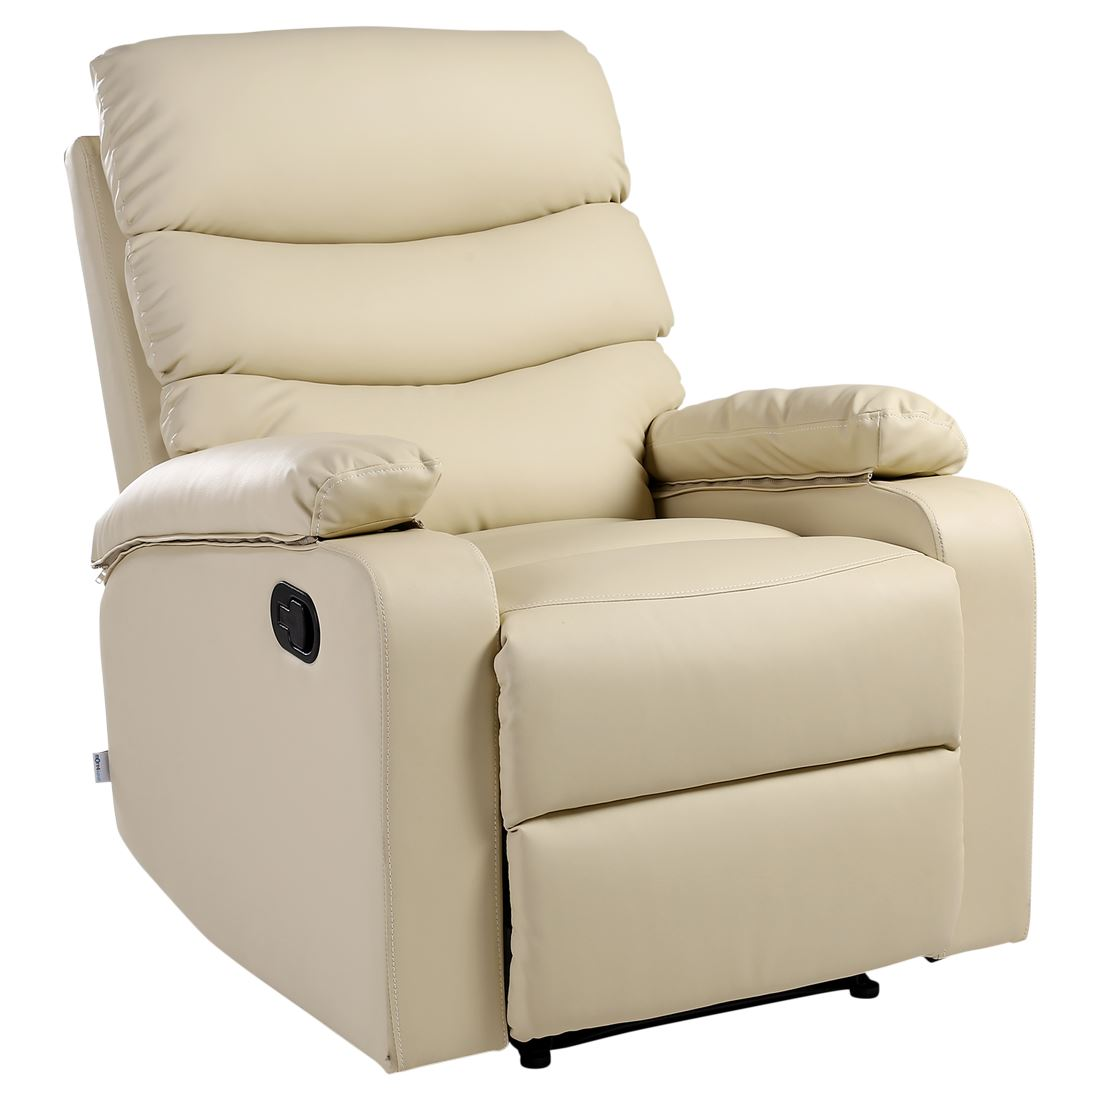 ashby cream leather recliner armchair sofa home lounge chair reclining